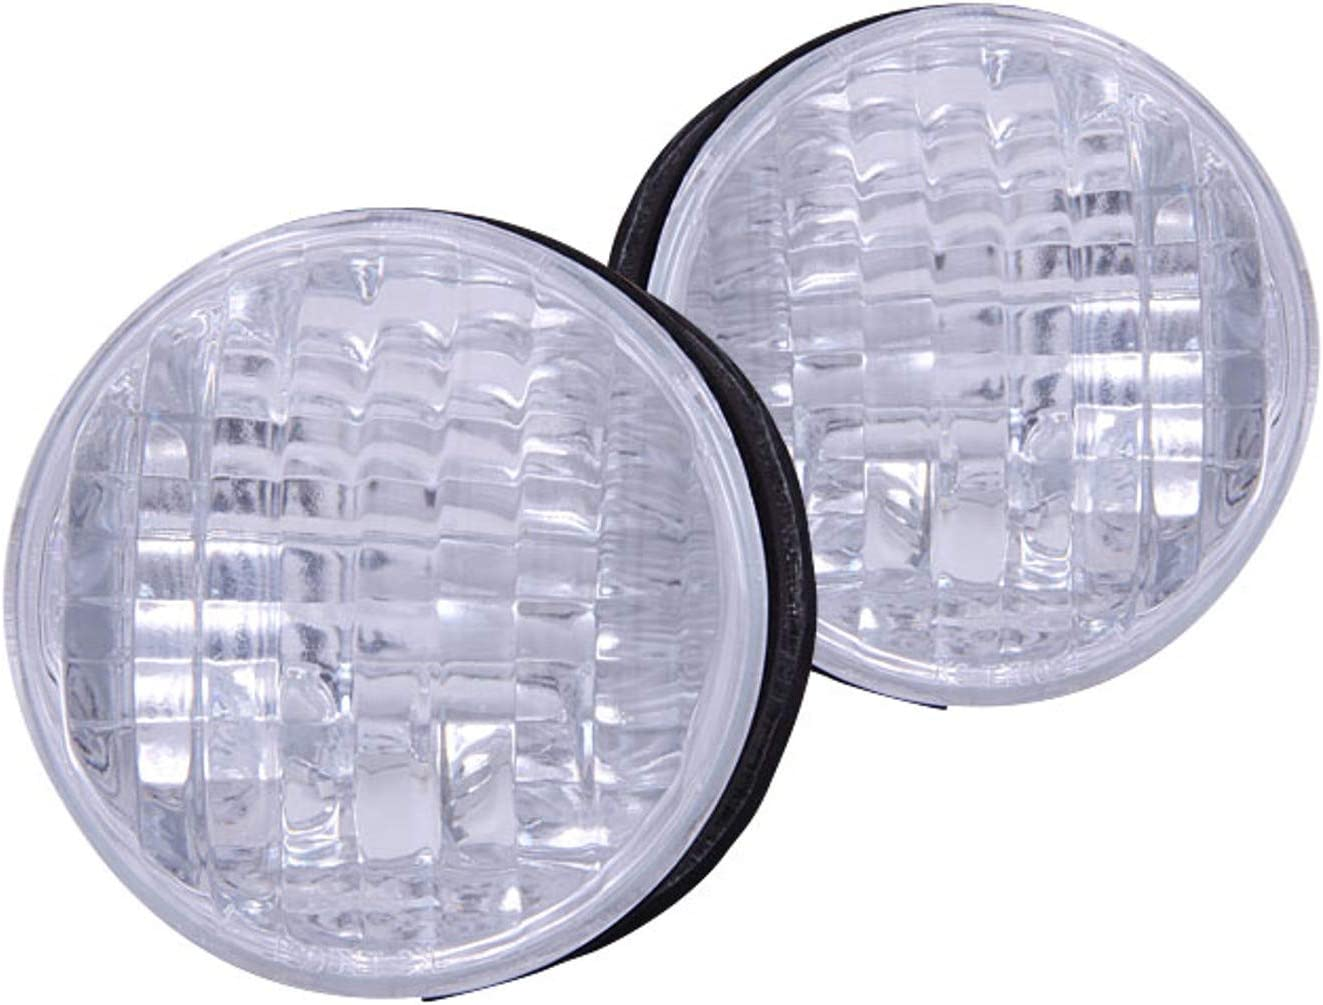 Discount is also underway AnzoUSA 221214 Clear Trunk Light for IS300 Sold Pair - in Lexus Max 54% OFF